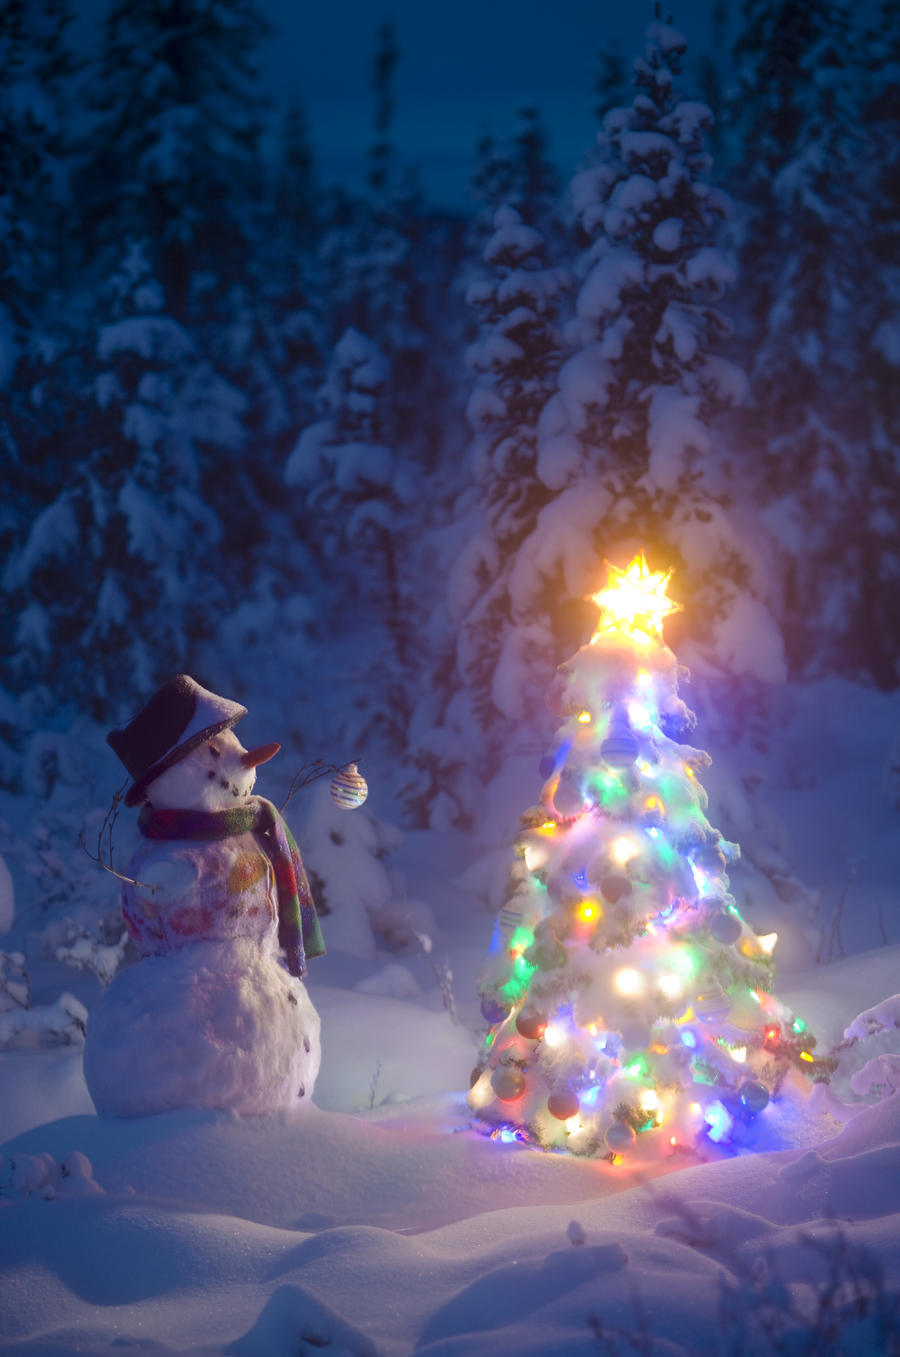 Snowman stands in a snowcovered spruce forest next to